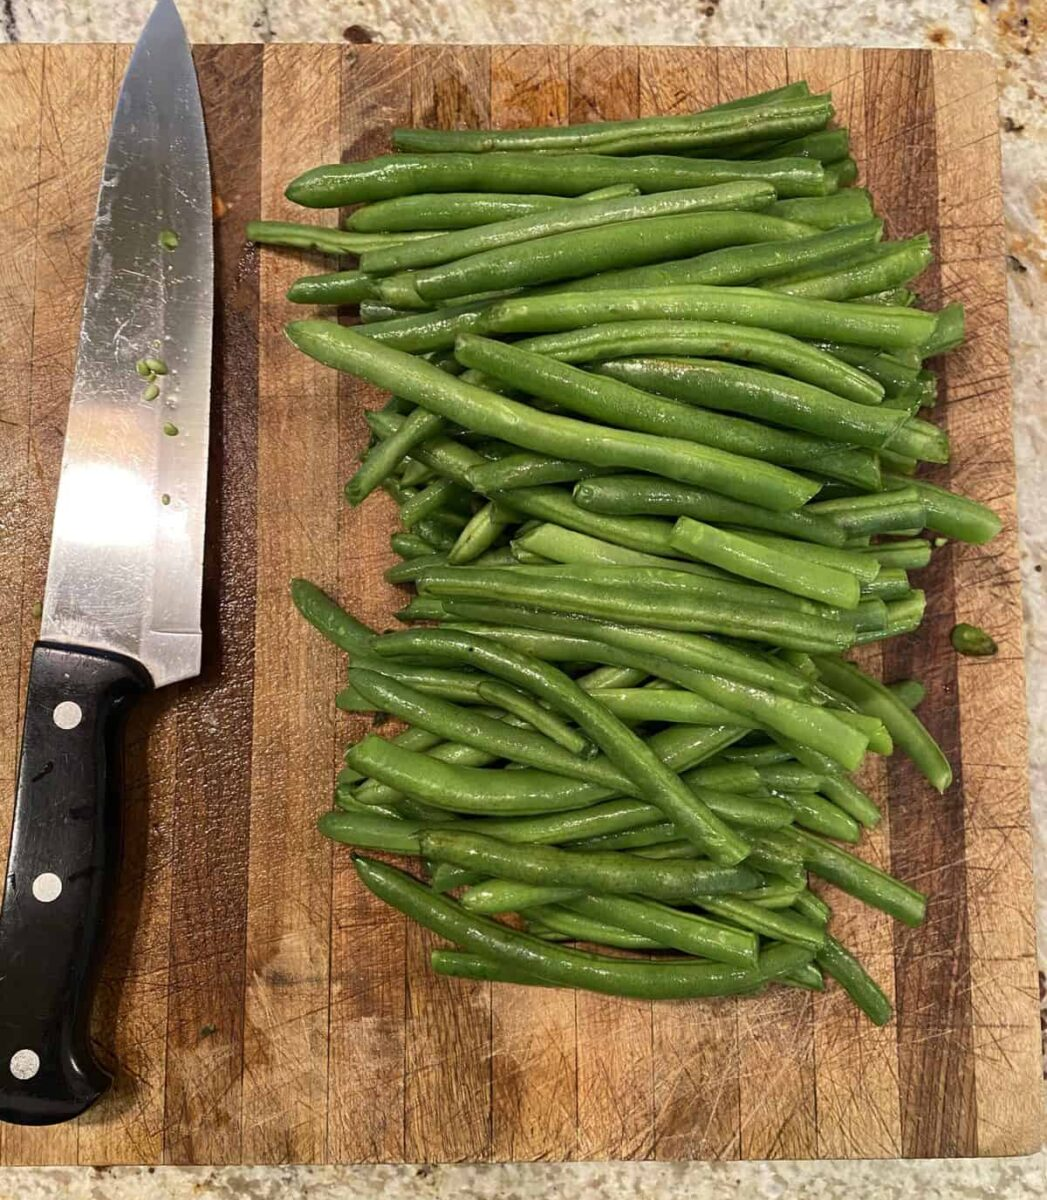 Green beans and a knife on a cutting board.